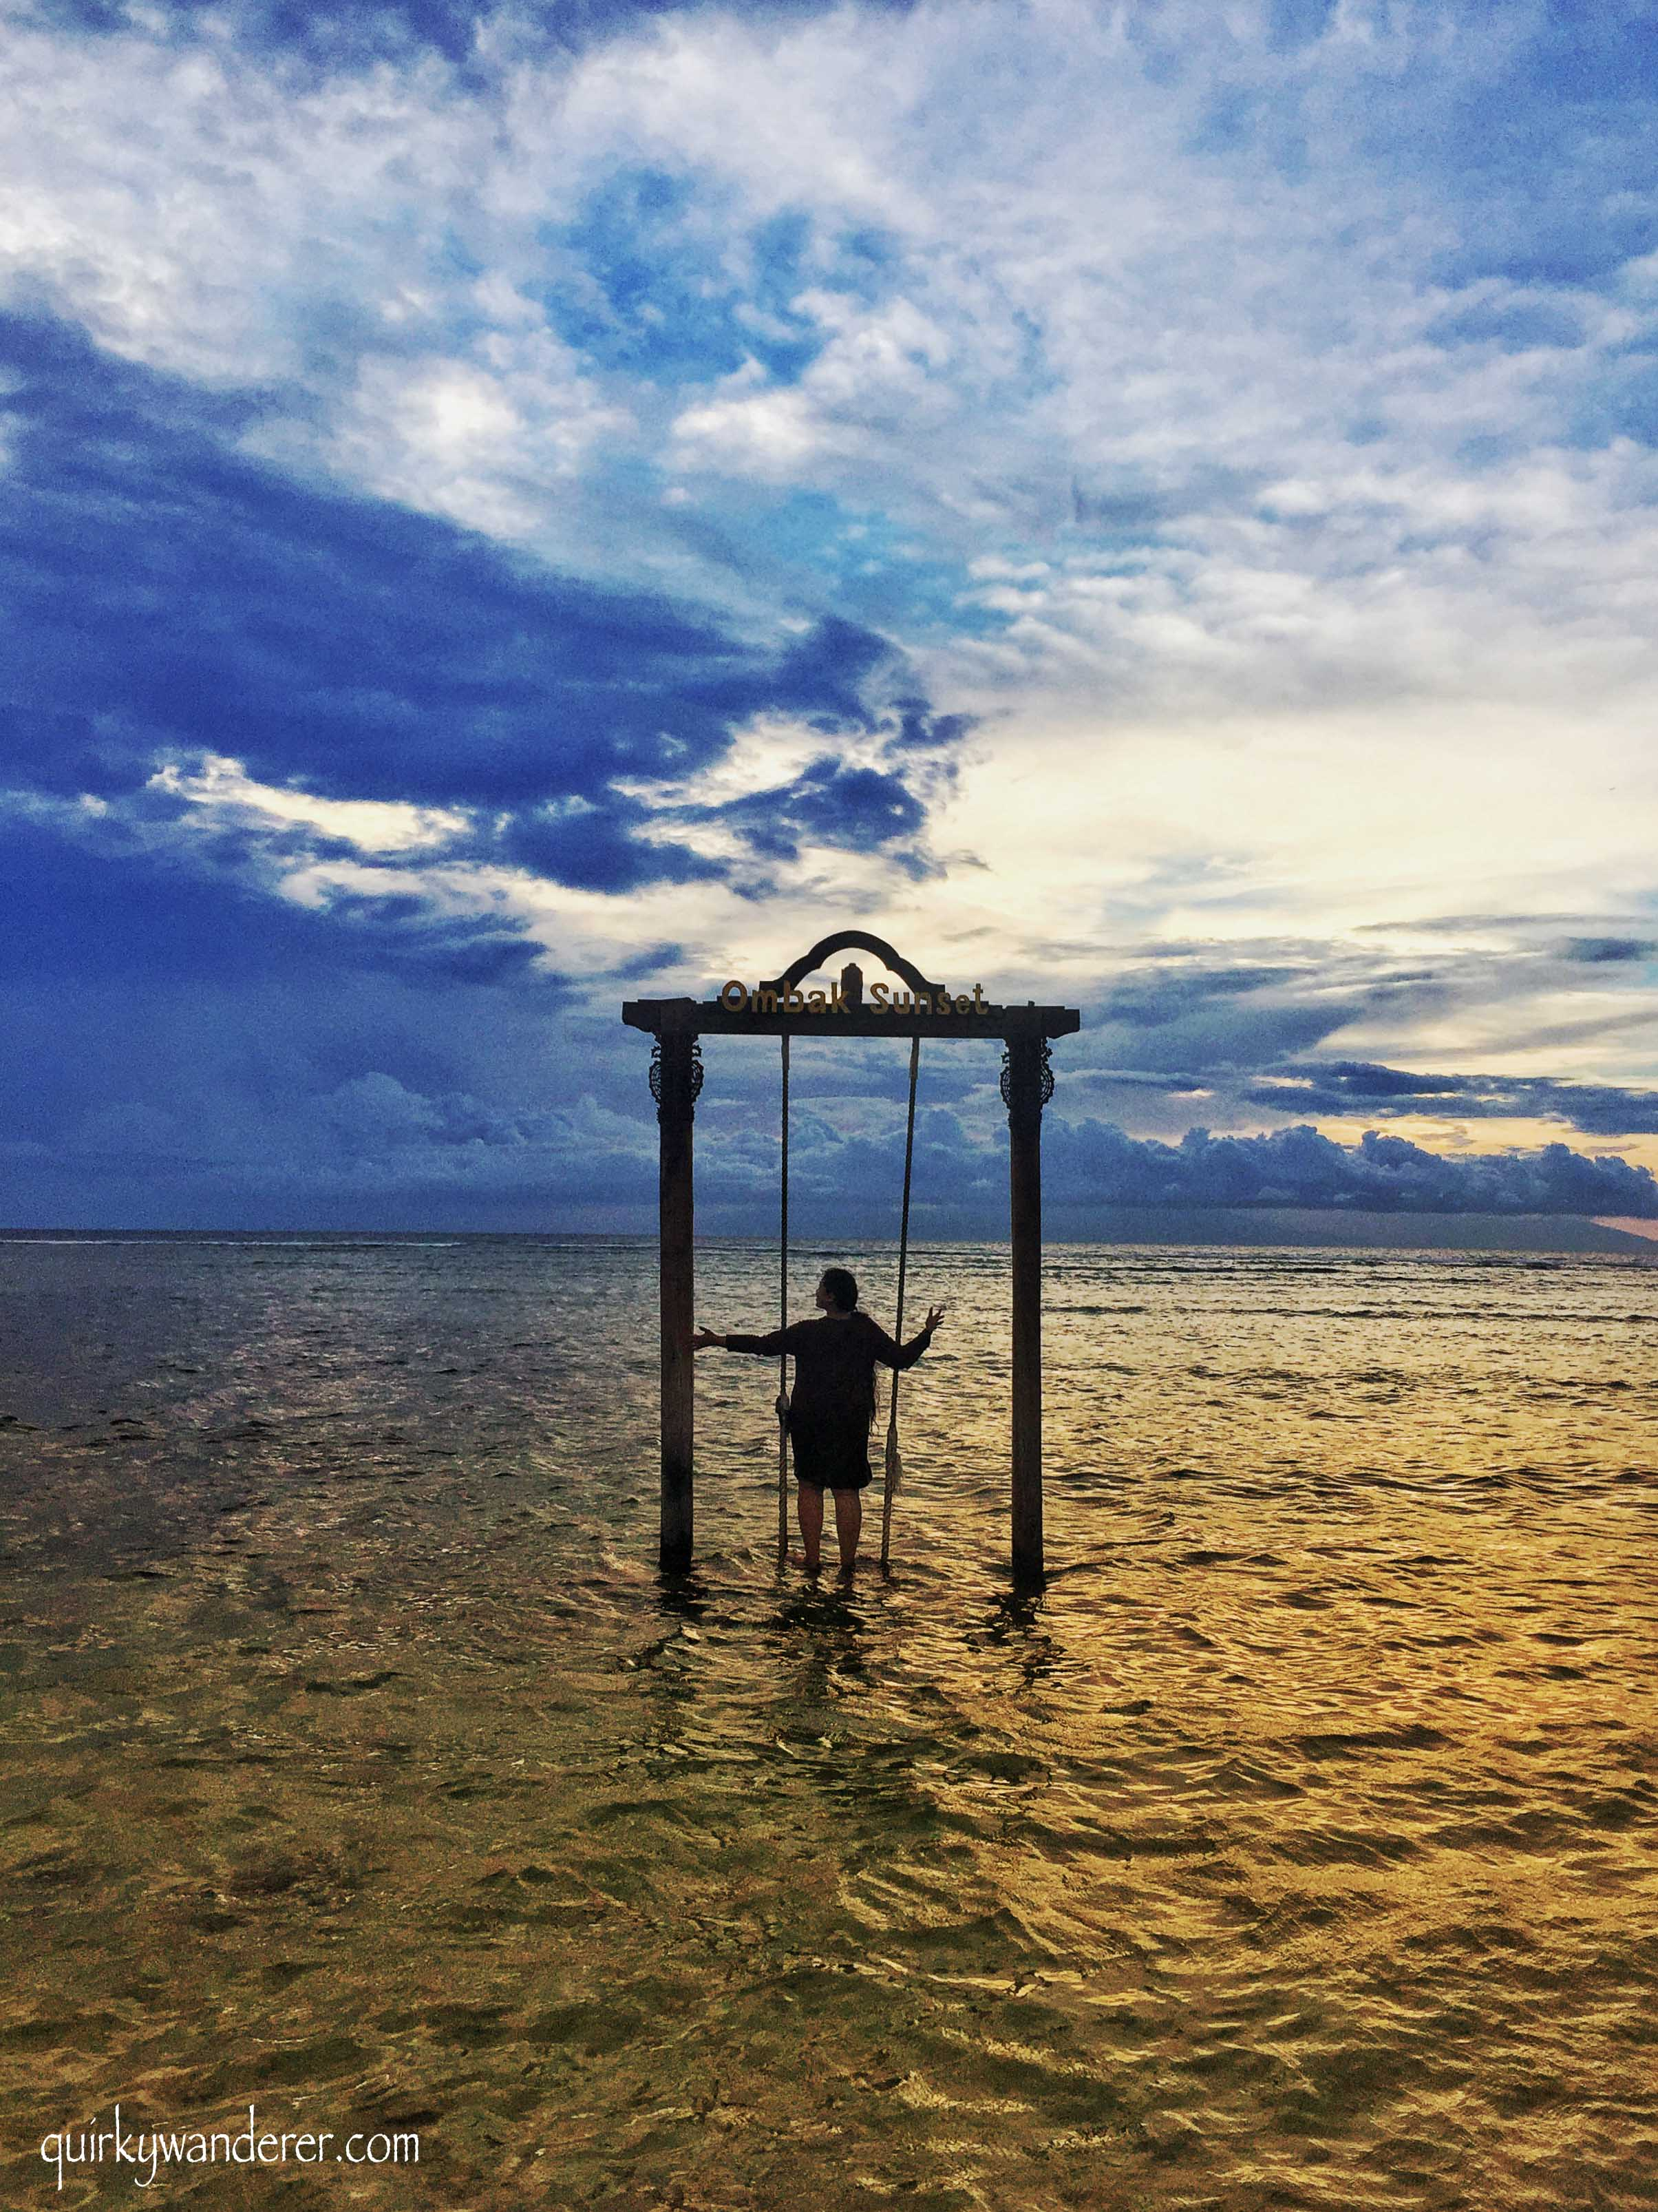 Swings at Gili Trawangan